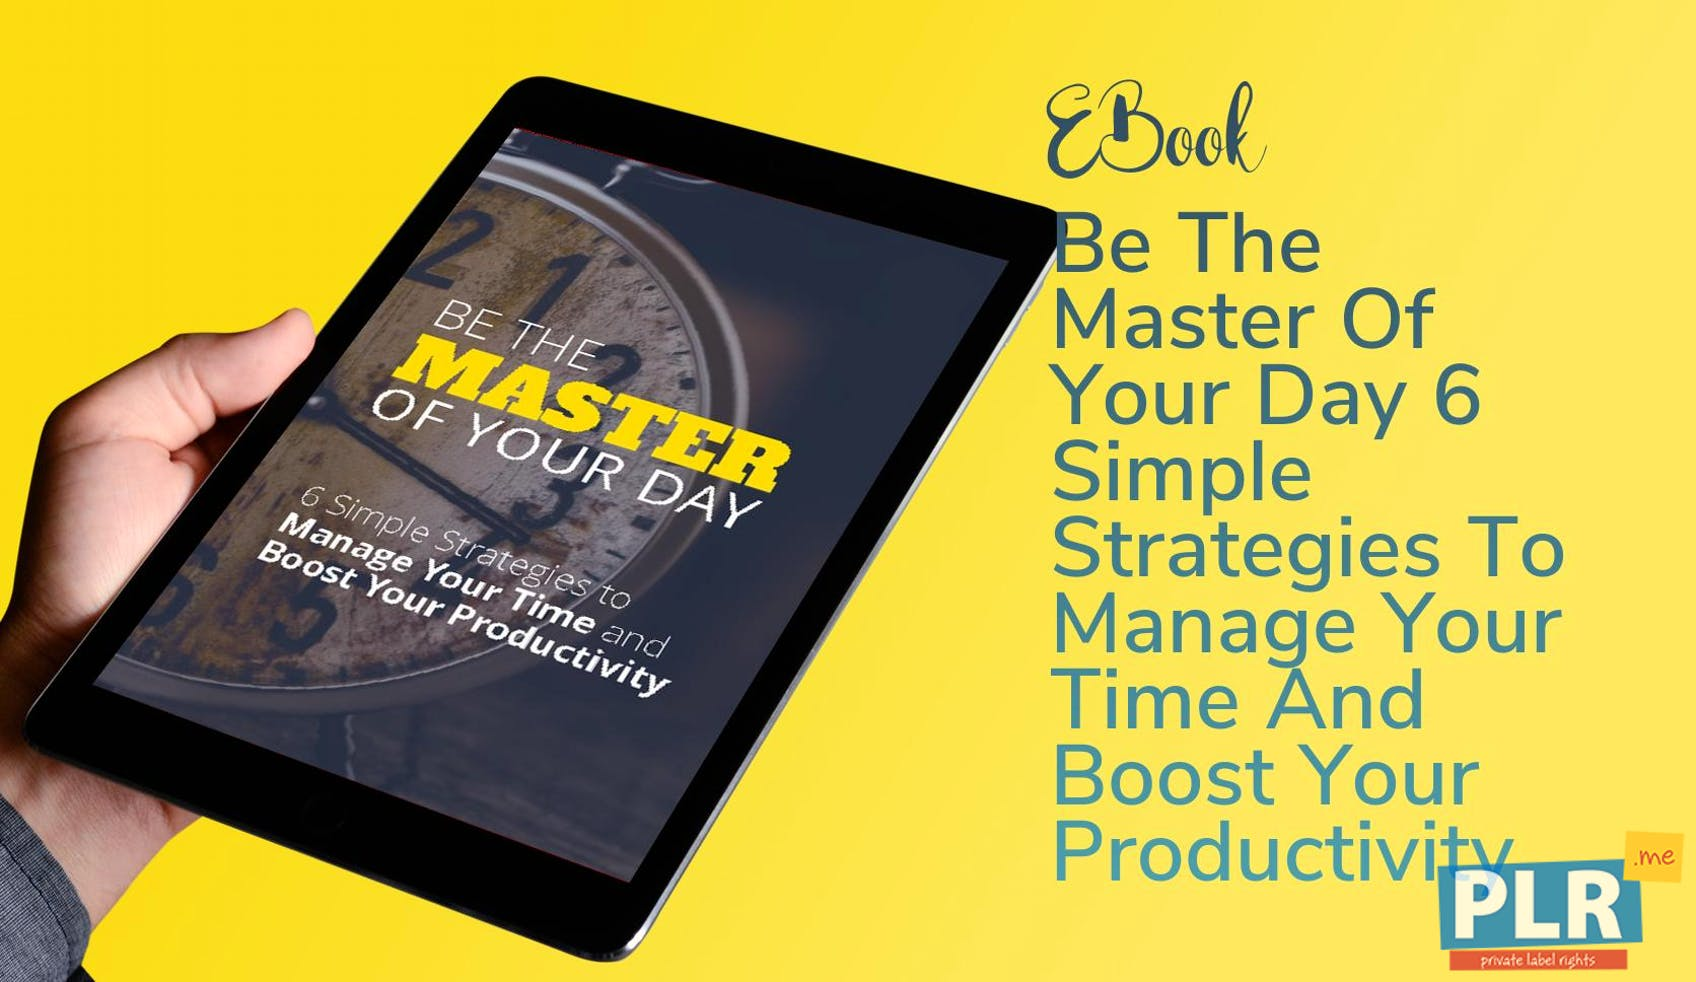 Be The Master Of Your Day 6 Simple Strategies To Manage Your Time And Boost Your Productivity